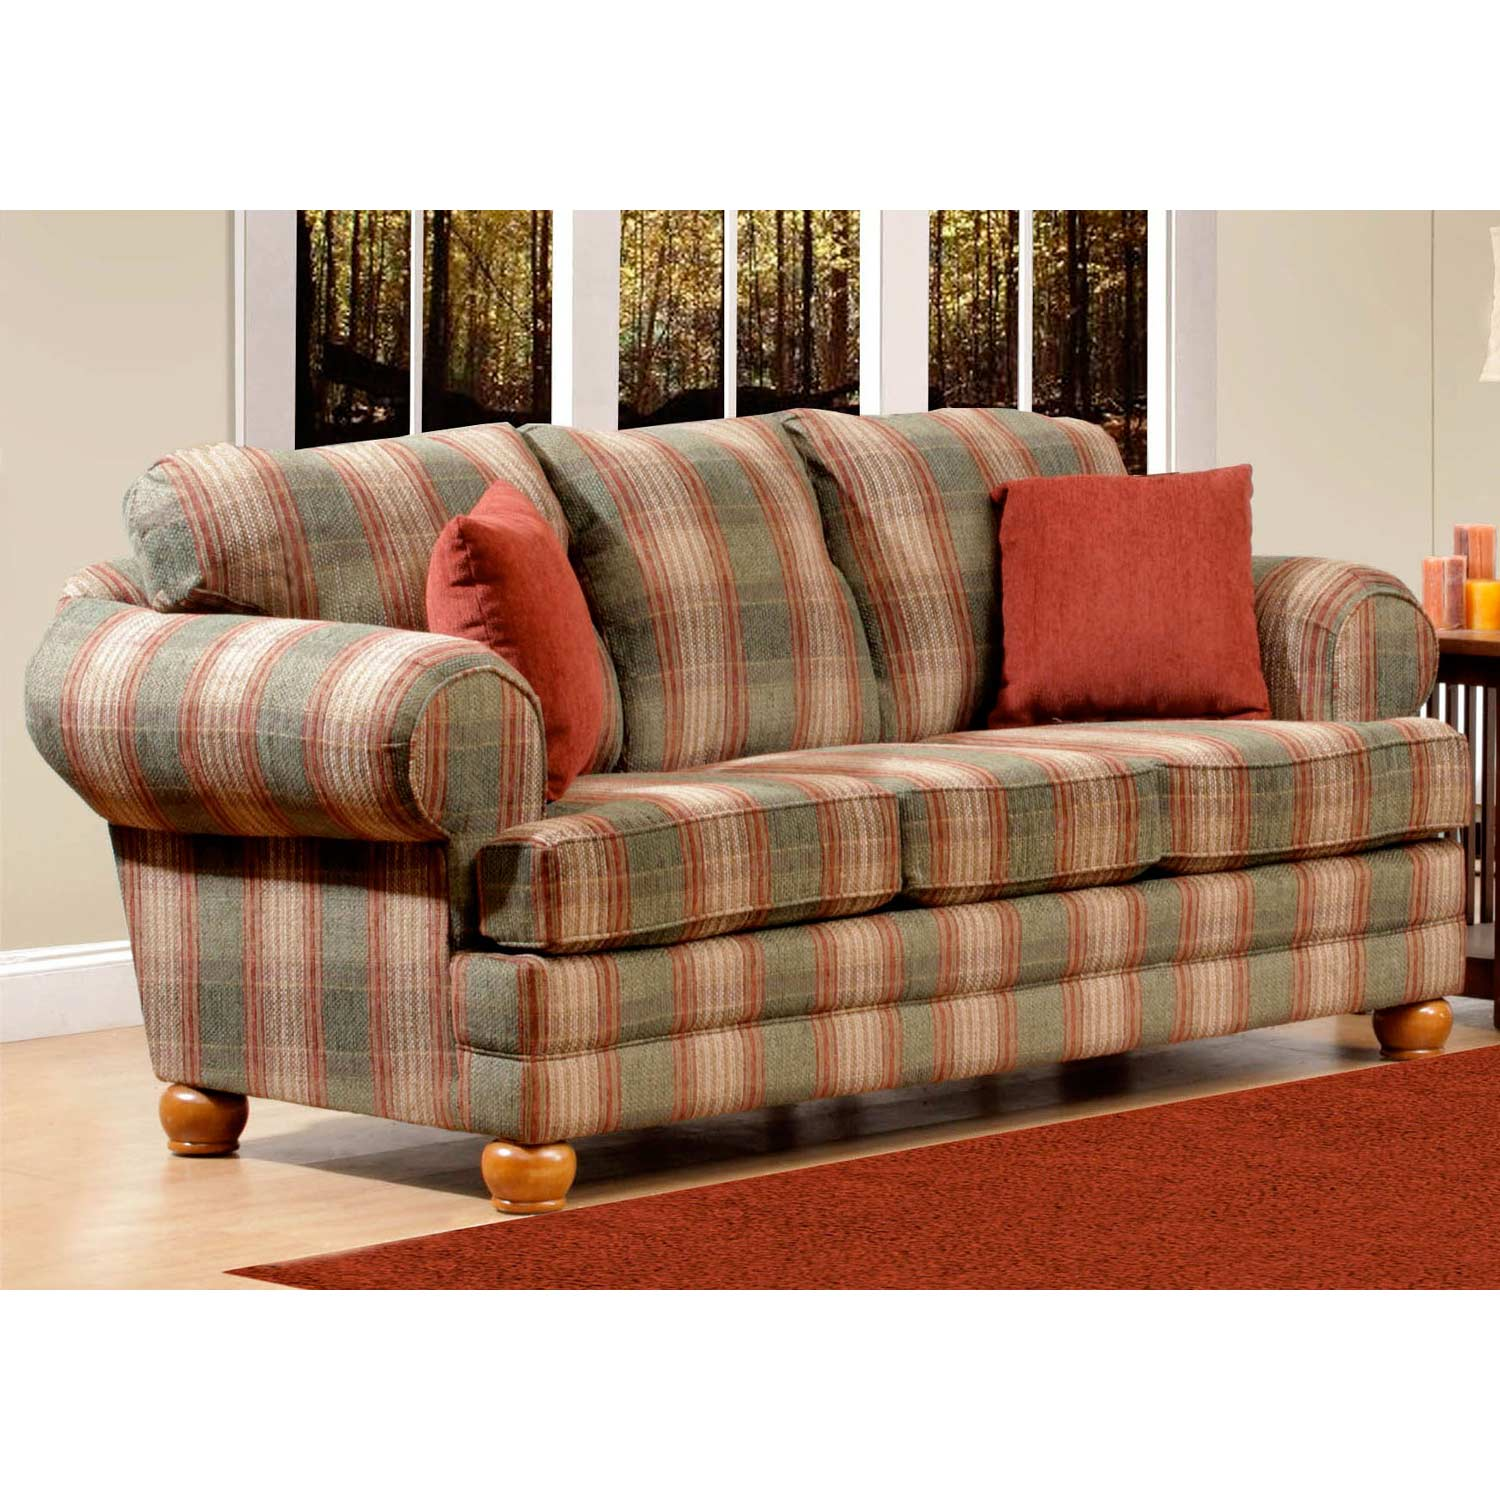 Cedaredge Plaid Sofa Pine Ridge Green Fabric Dcg Stores